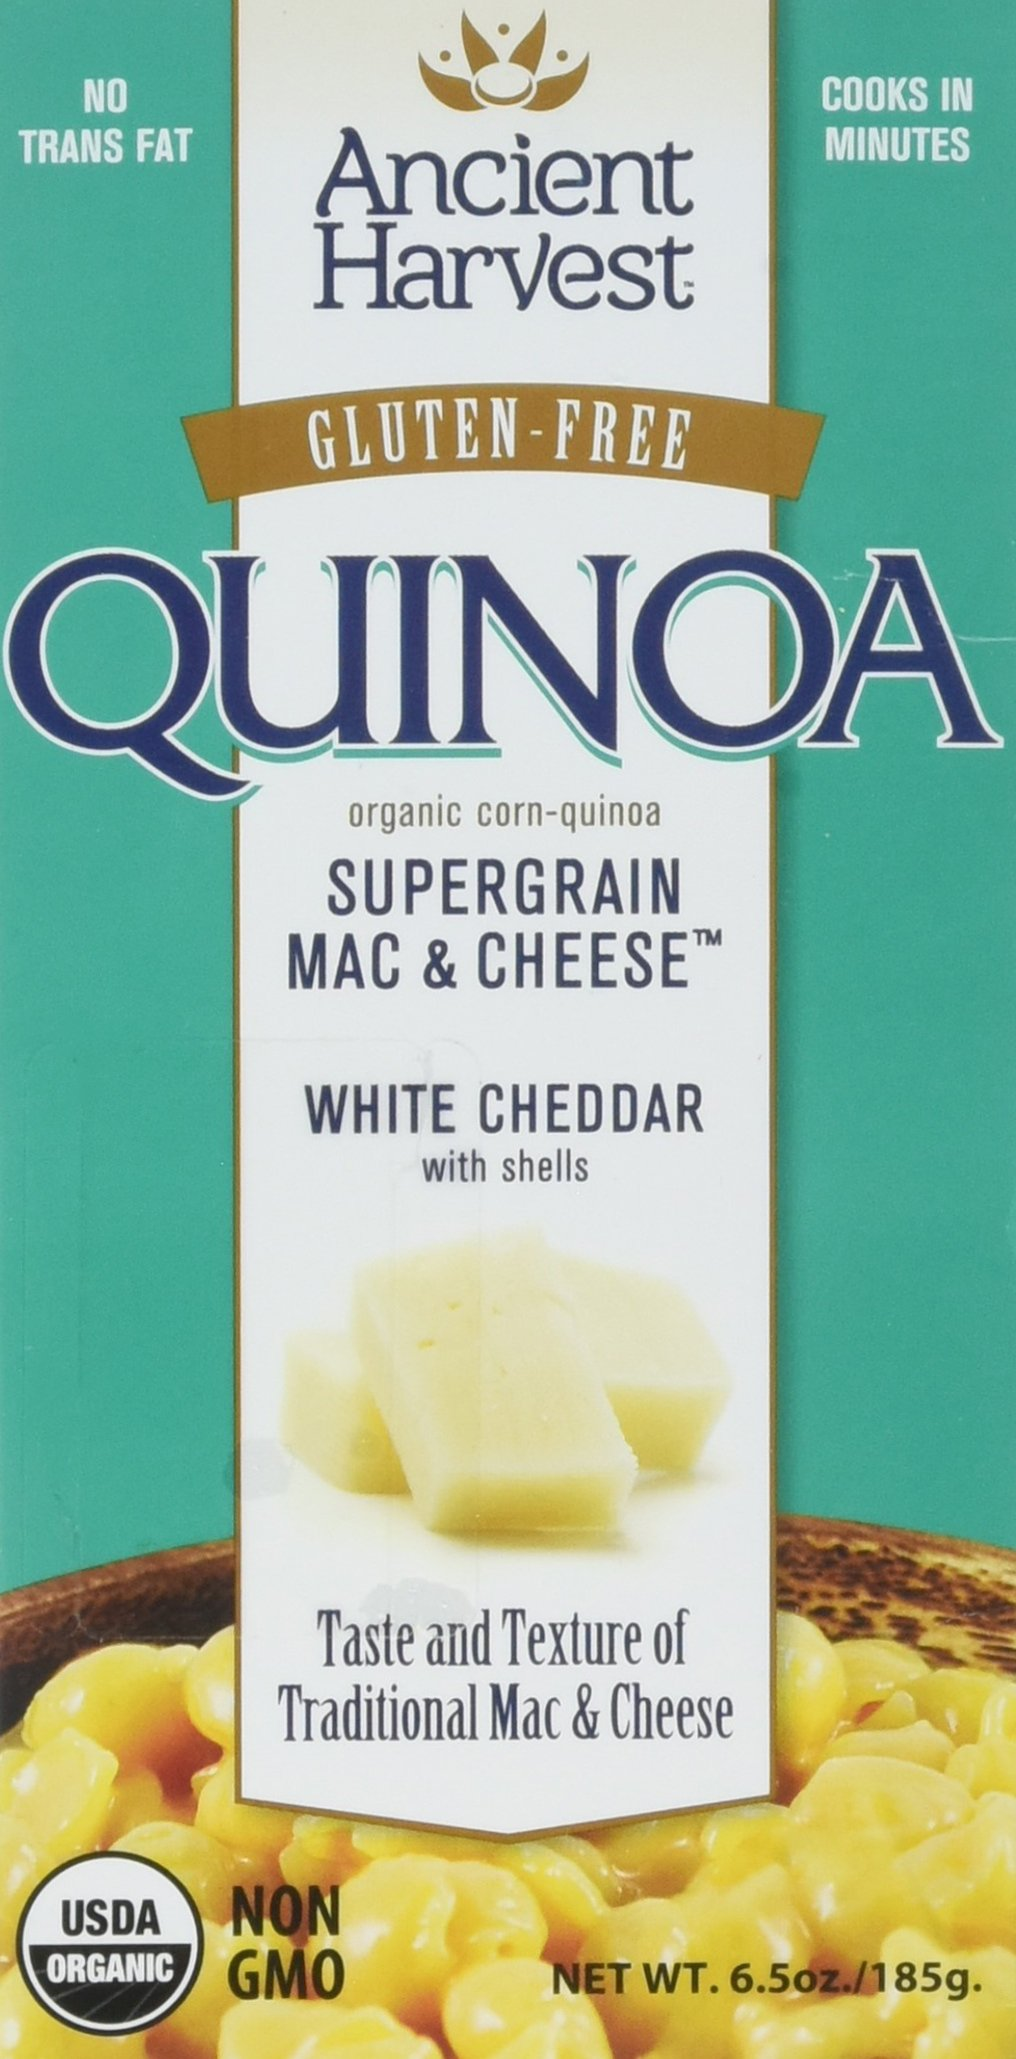 Gluten-Free Supergrain White Cheddar Mac and Cheese 6 Ounces (Case of 12) by Ancient Harvest Quinoa